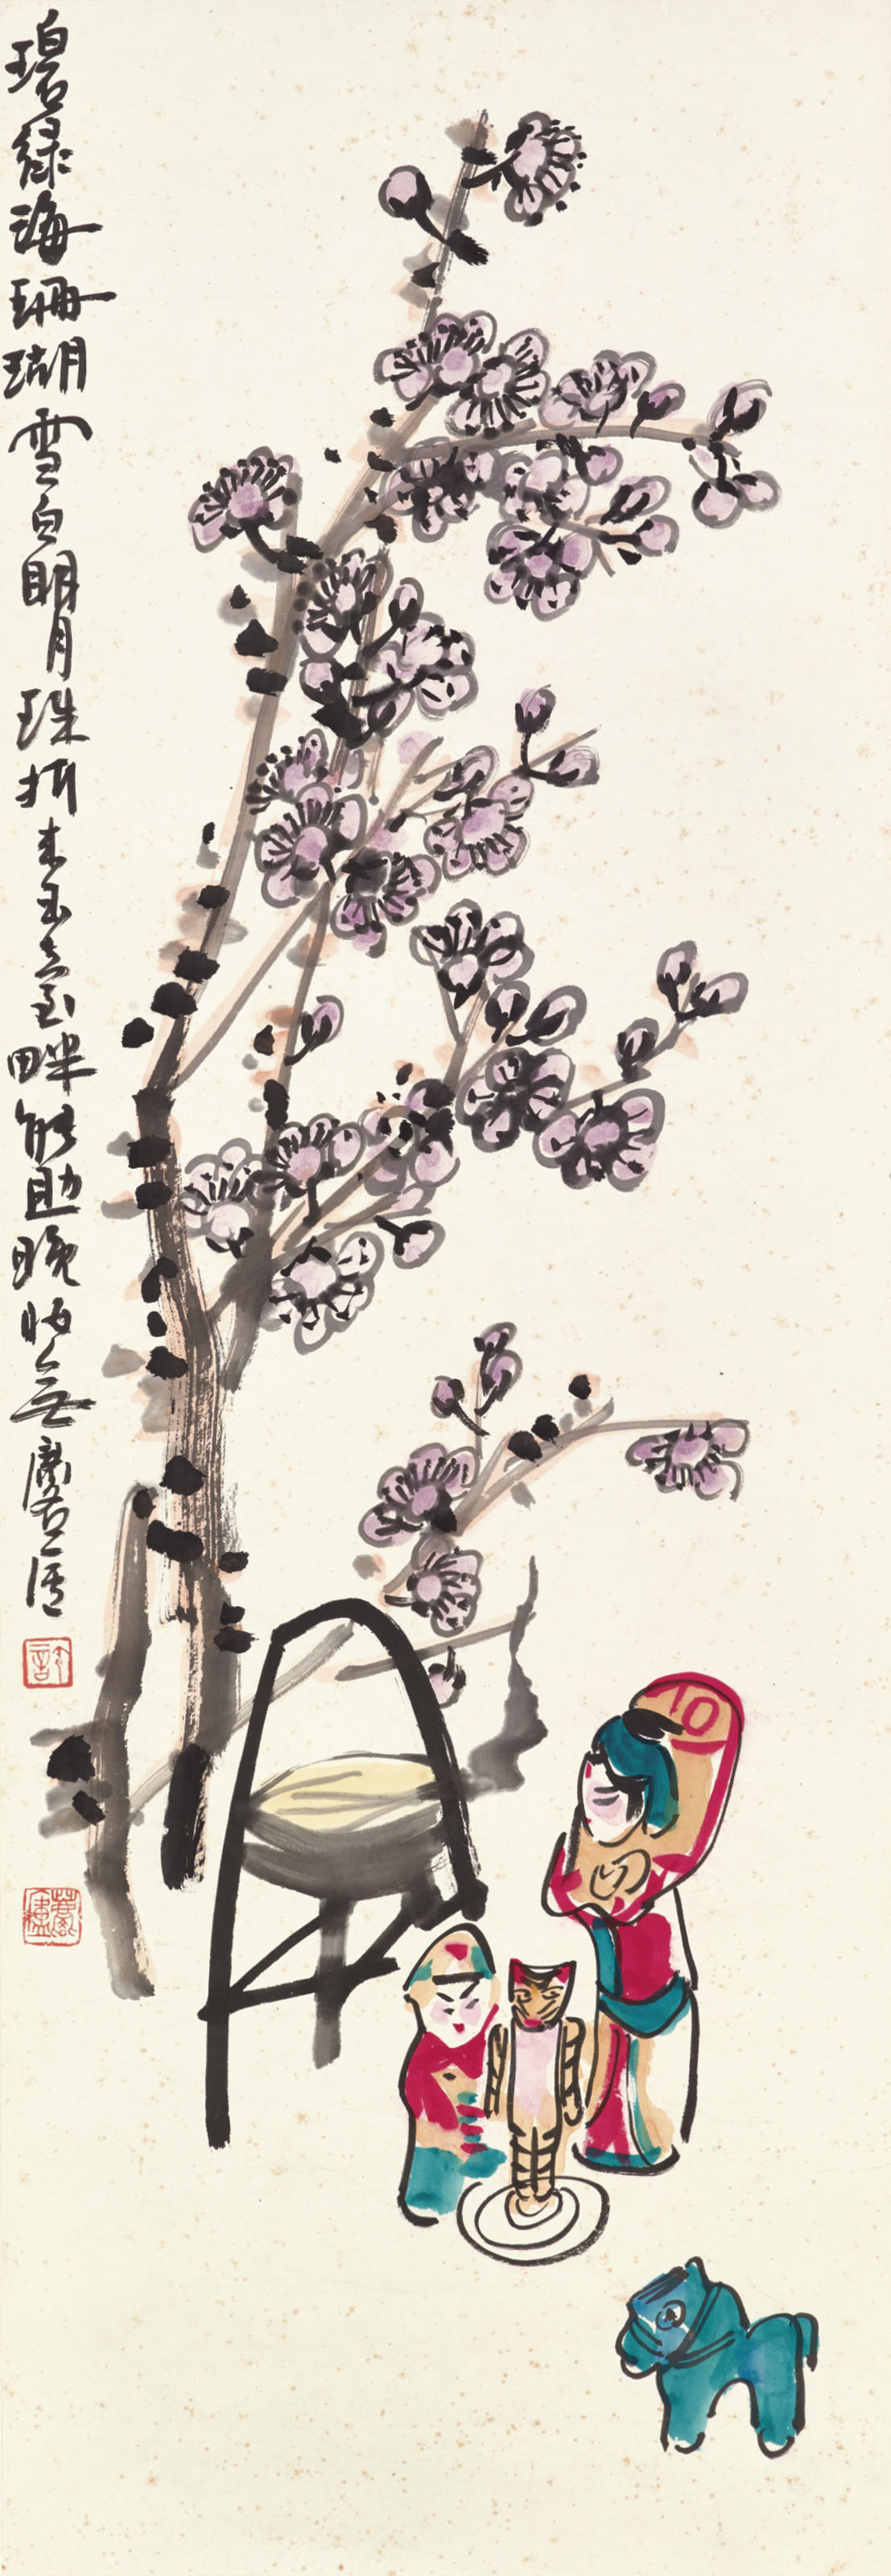 Playthings under Plum Blossoms